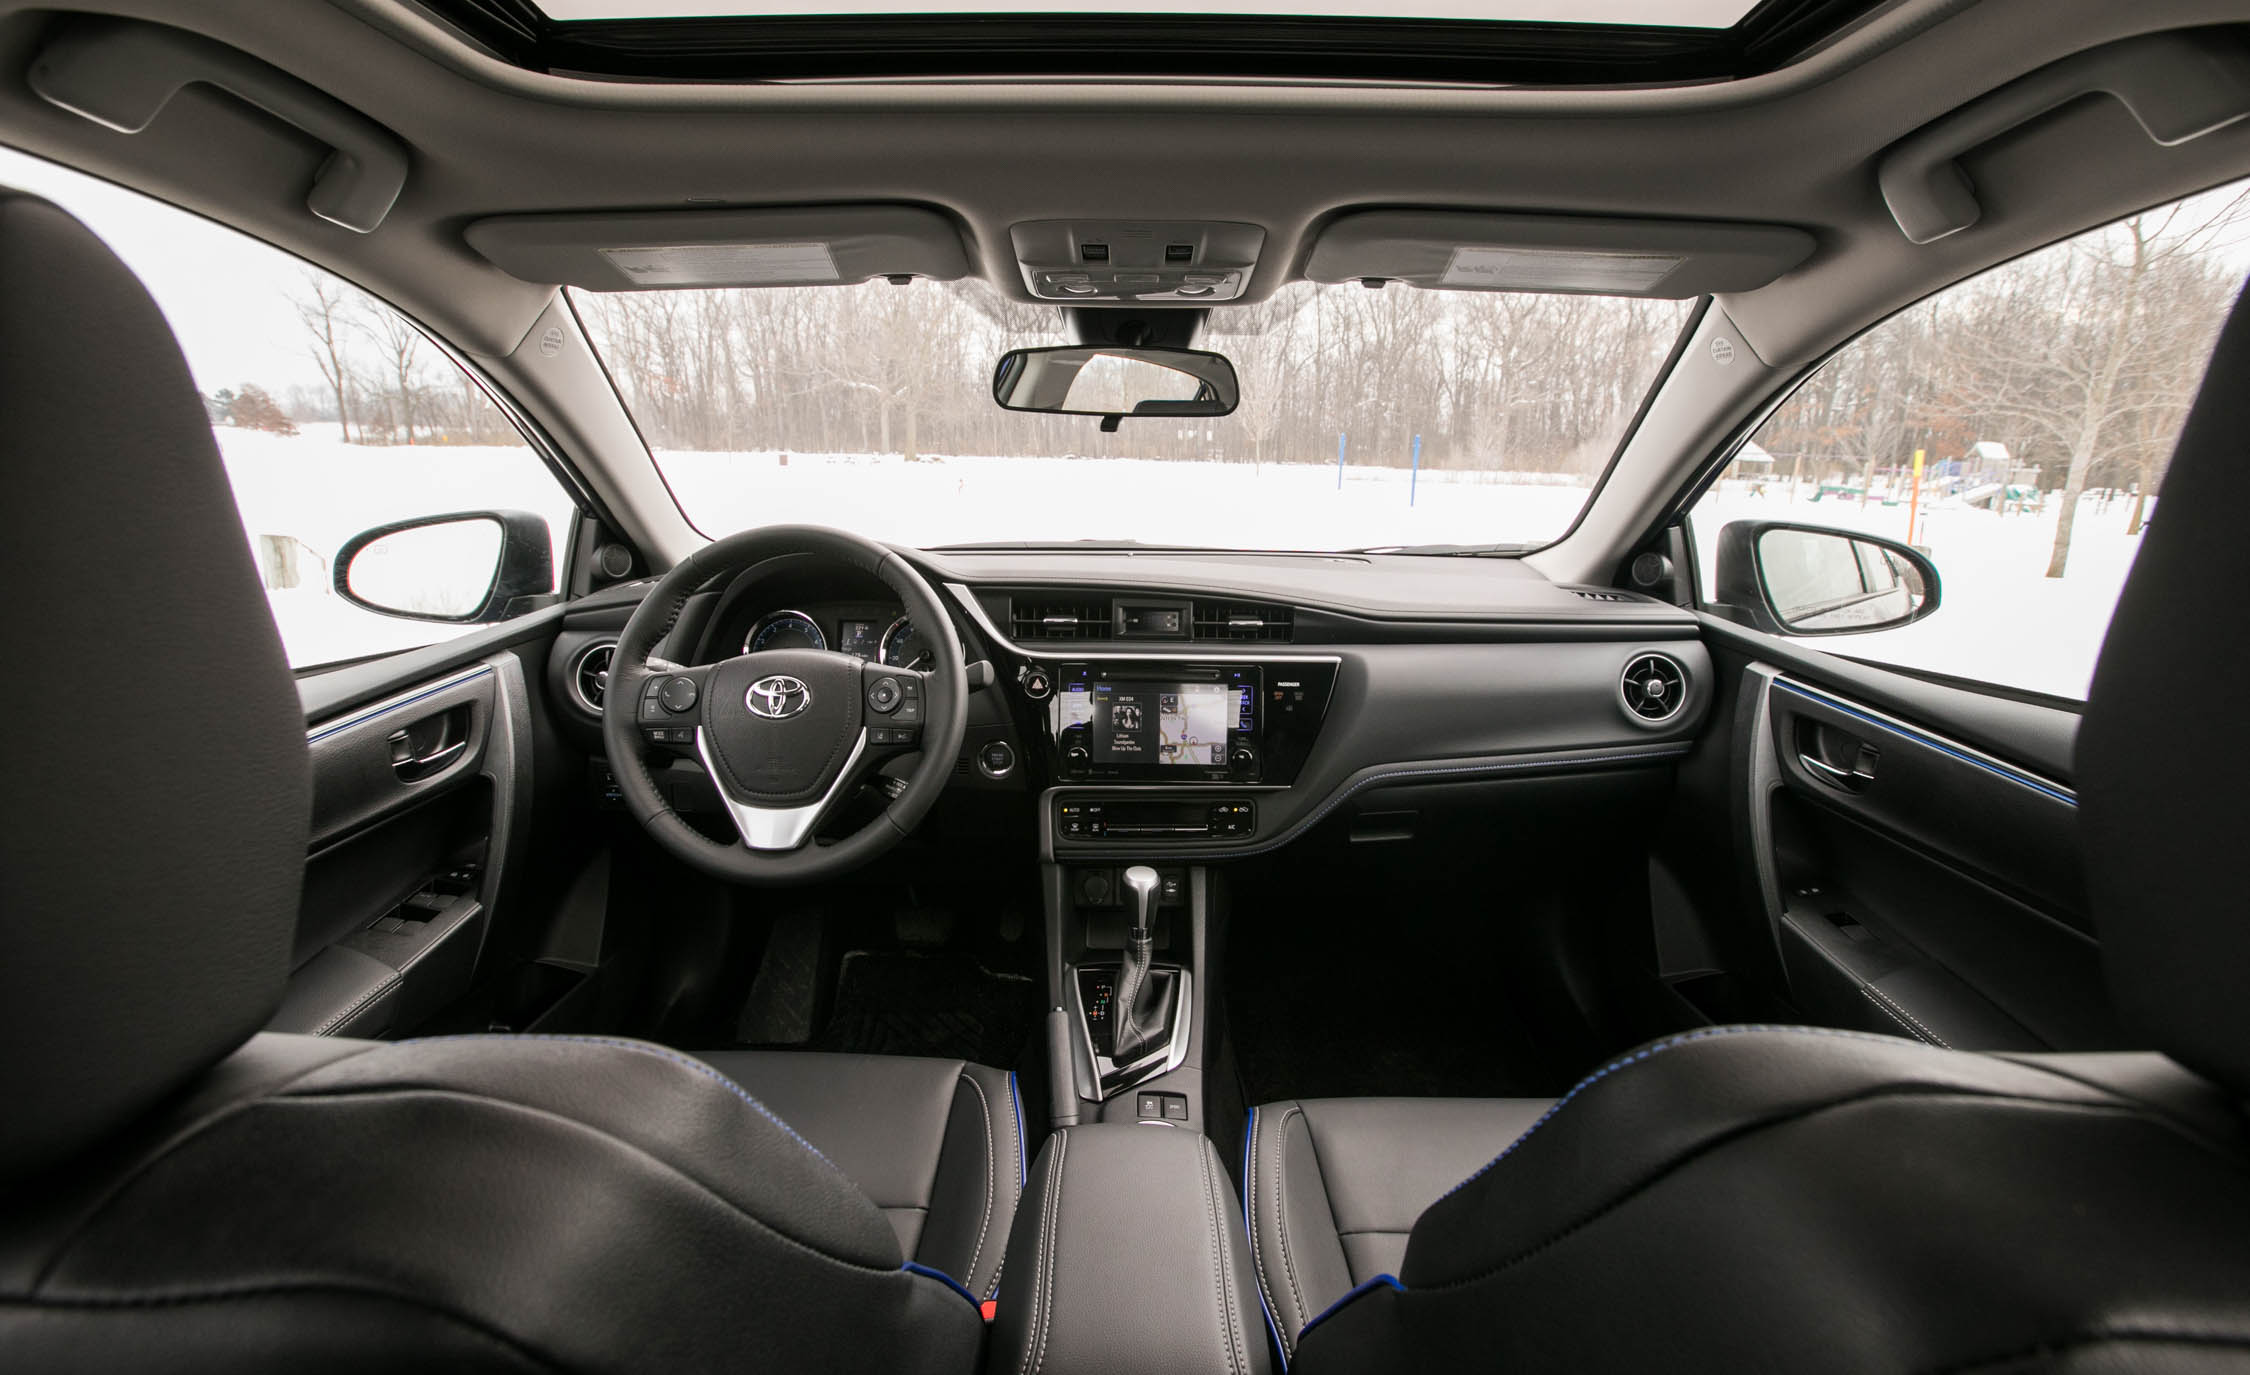 2017 Toyota Corolla XSE Interior (Photo 49 of 75)